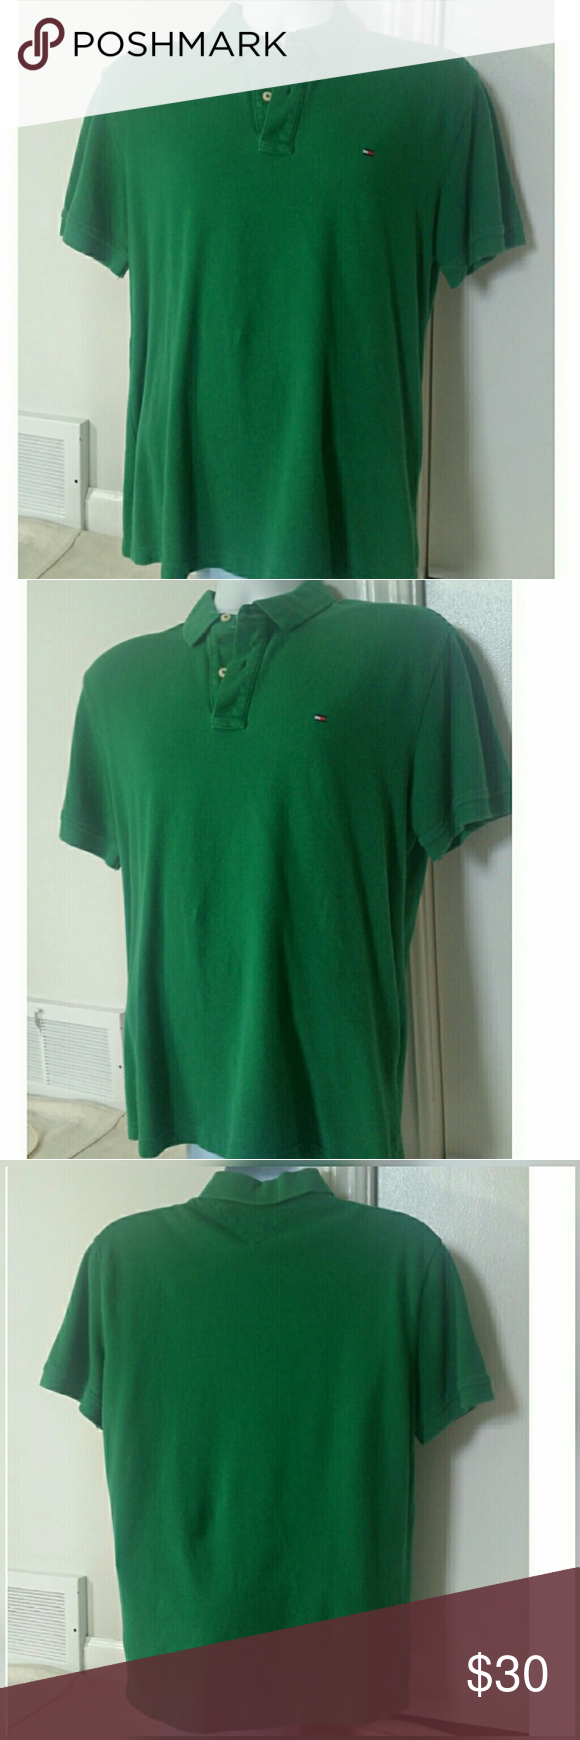 Men Polo Tommy Hilfer Polo Shirt Brands Green Polo Shirts And